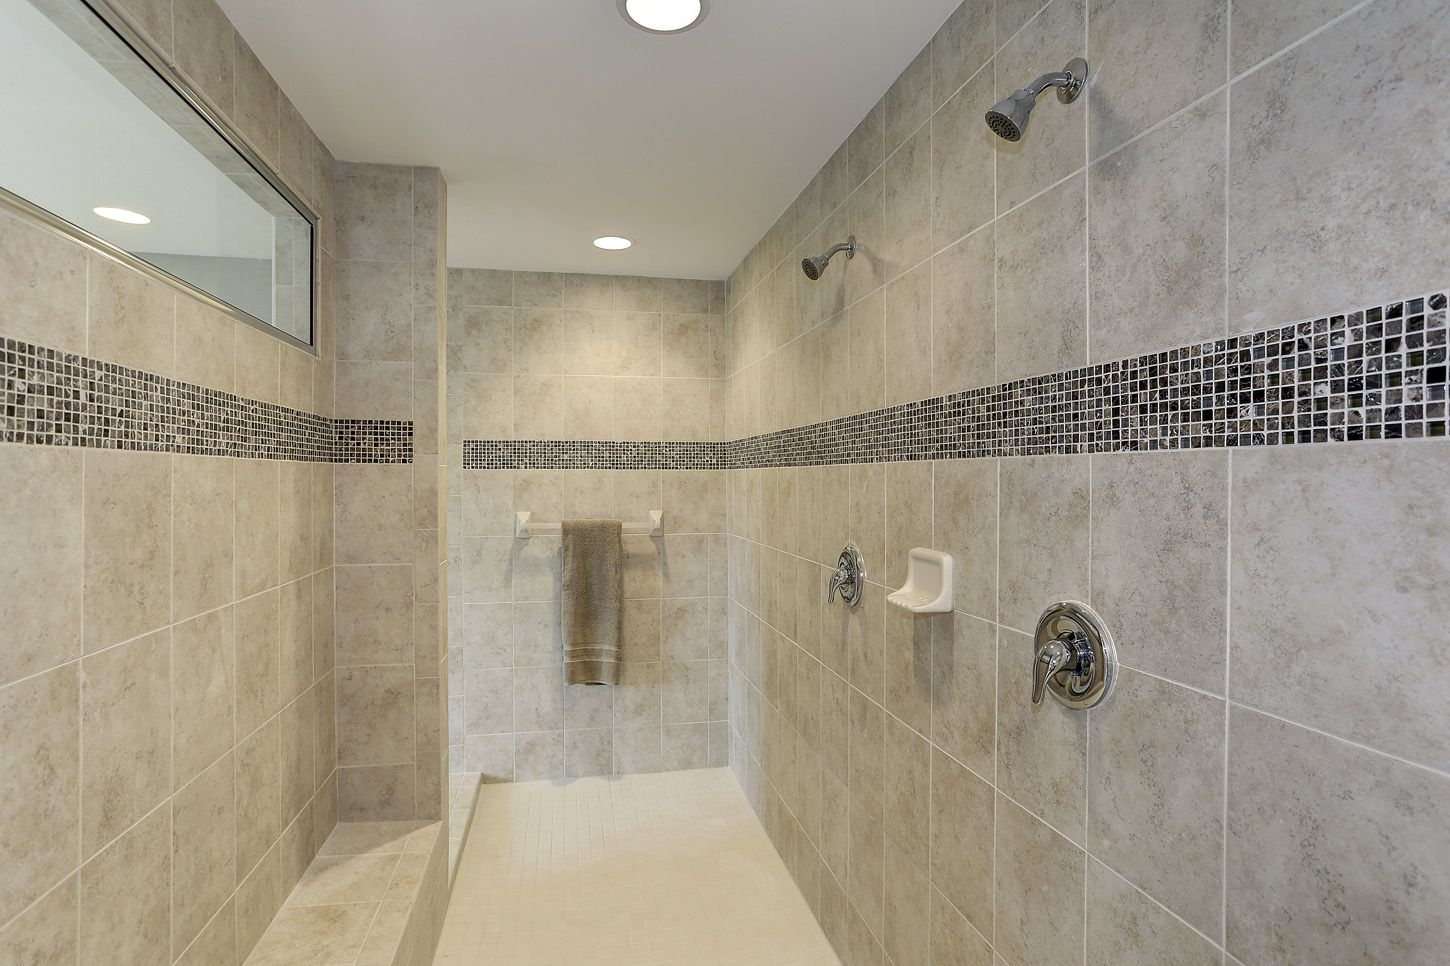 Design Roman Shower roman shower with granite tile in owners bathroom the rosecliff ii model at maple valley